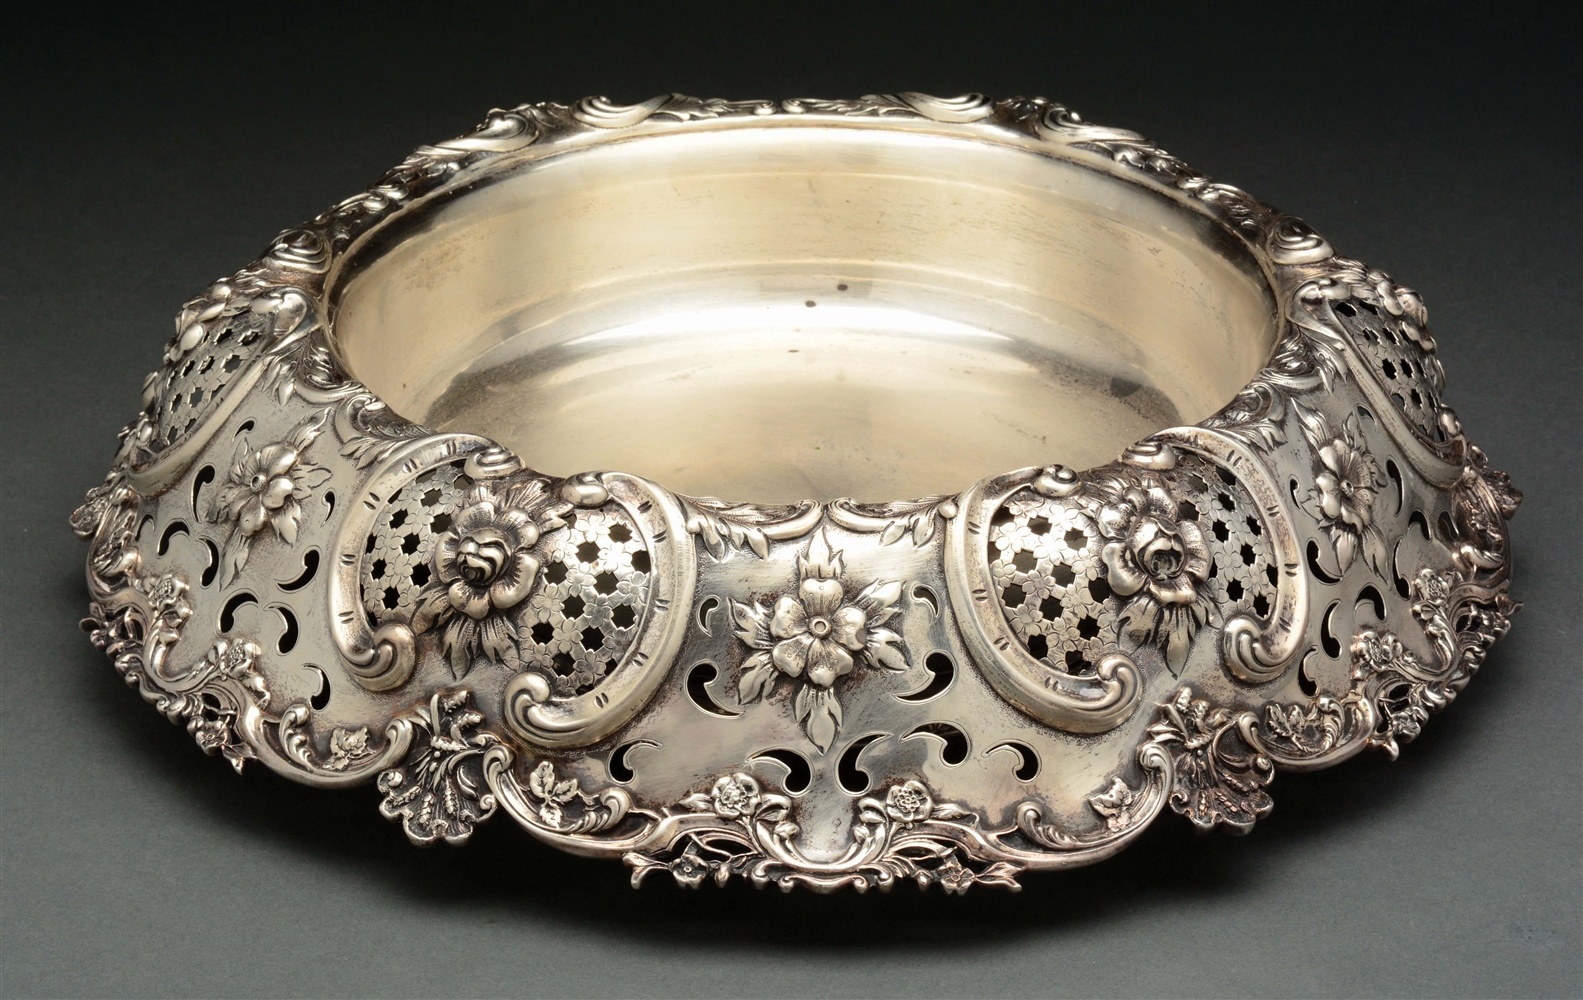 A Large Tiffany Sterling Center Bowl.